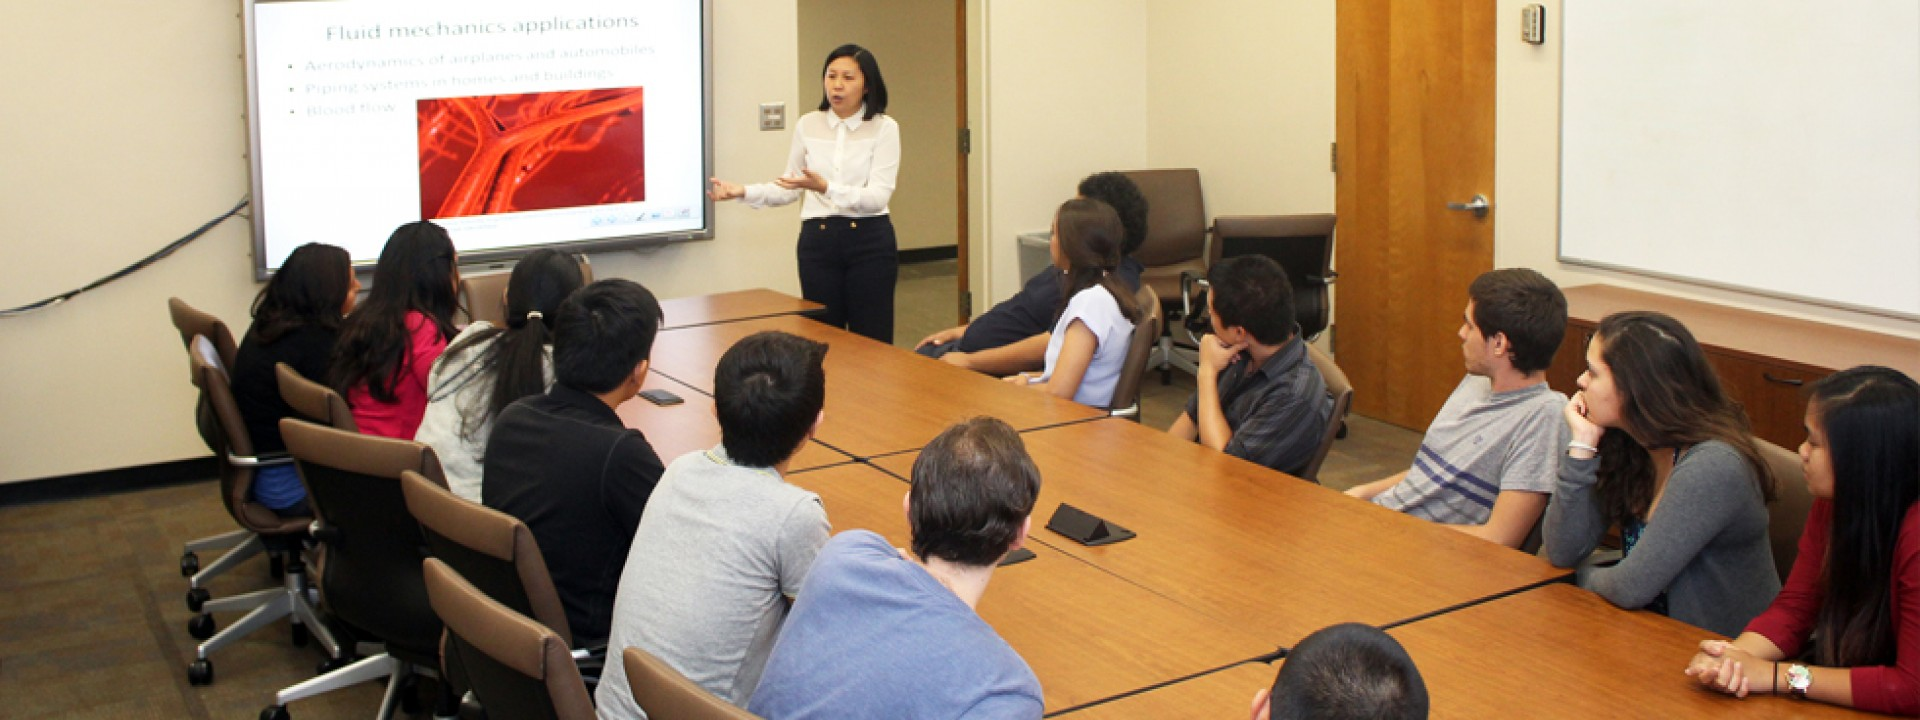 Group of Cal State LA students in a classroom around a conference table facing a projector screen as a lecturer teaches.